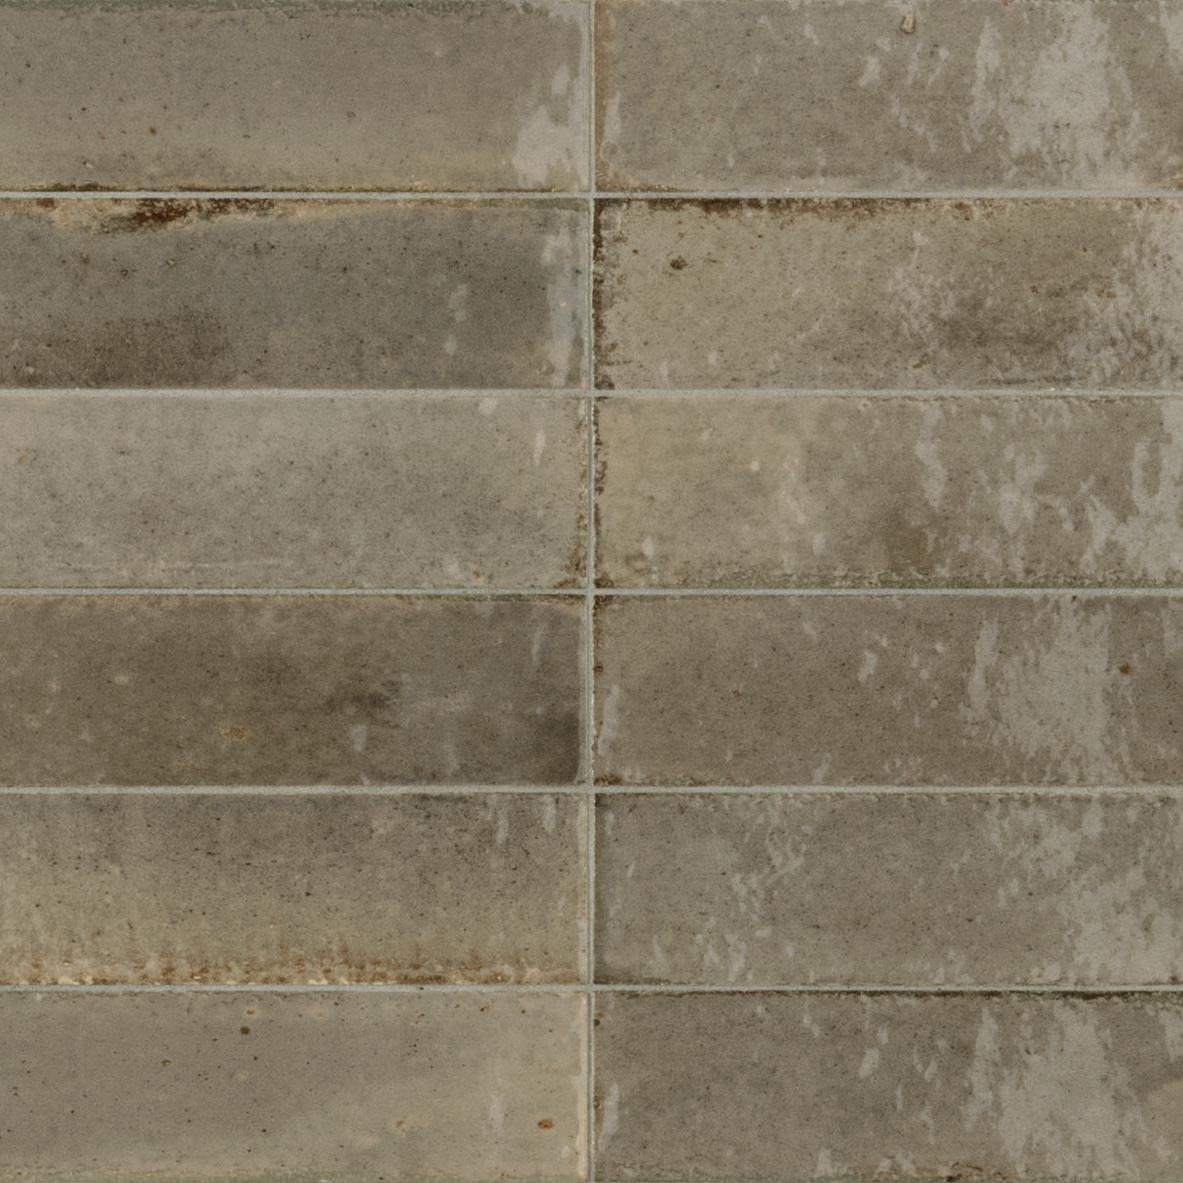 Marazzi Lume - Greige (Please call us on 0161 941 4143 to check stock availability before purchasing)